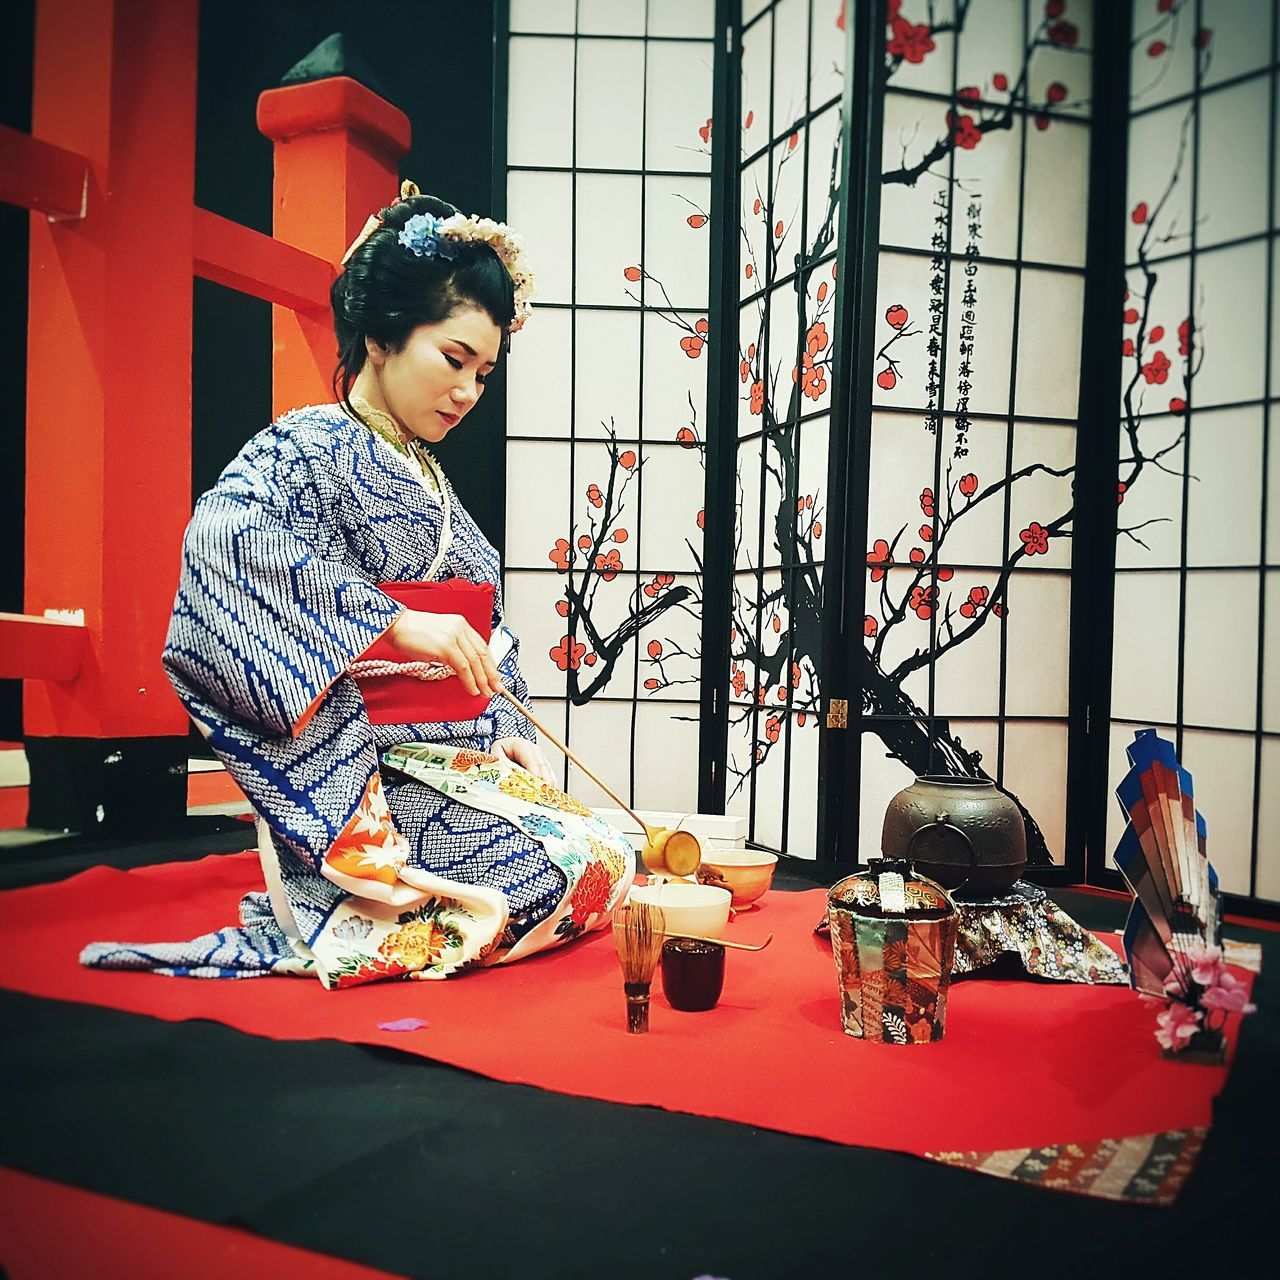 Japan Japanese Culture Japan Photography Japanese Traditional Japanese Style Japanese  Domestic Life Traditional Culture Tradition Traditional Clothing Ceremony Of Tea Red The Power Of Colours Women Who Inspire You Woman Portrait Women Of EyeEm Woman Power Indoors  EyeEm New Here Week On Eyeem Geisha Women Around The World